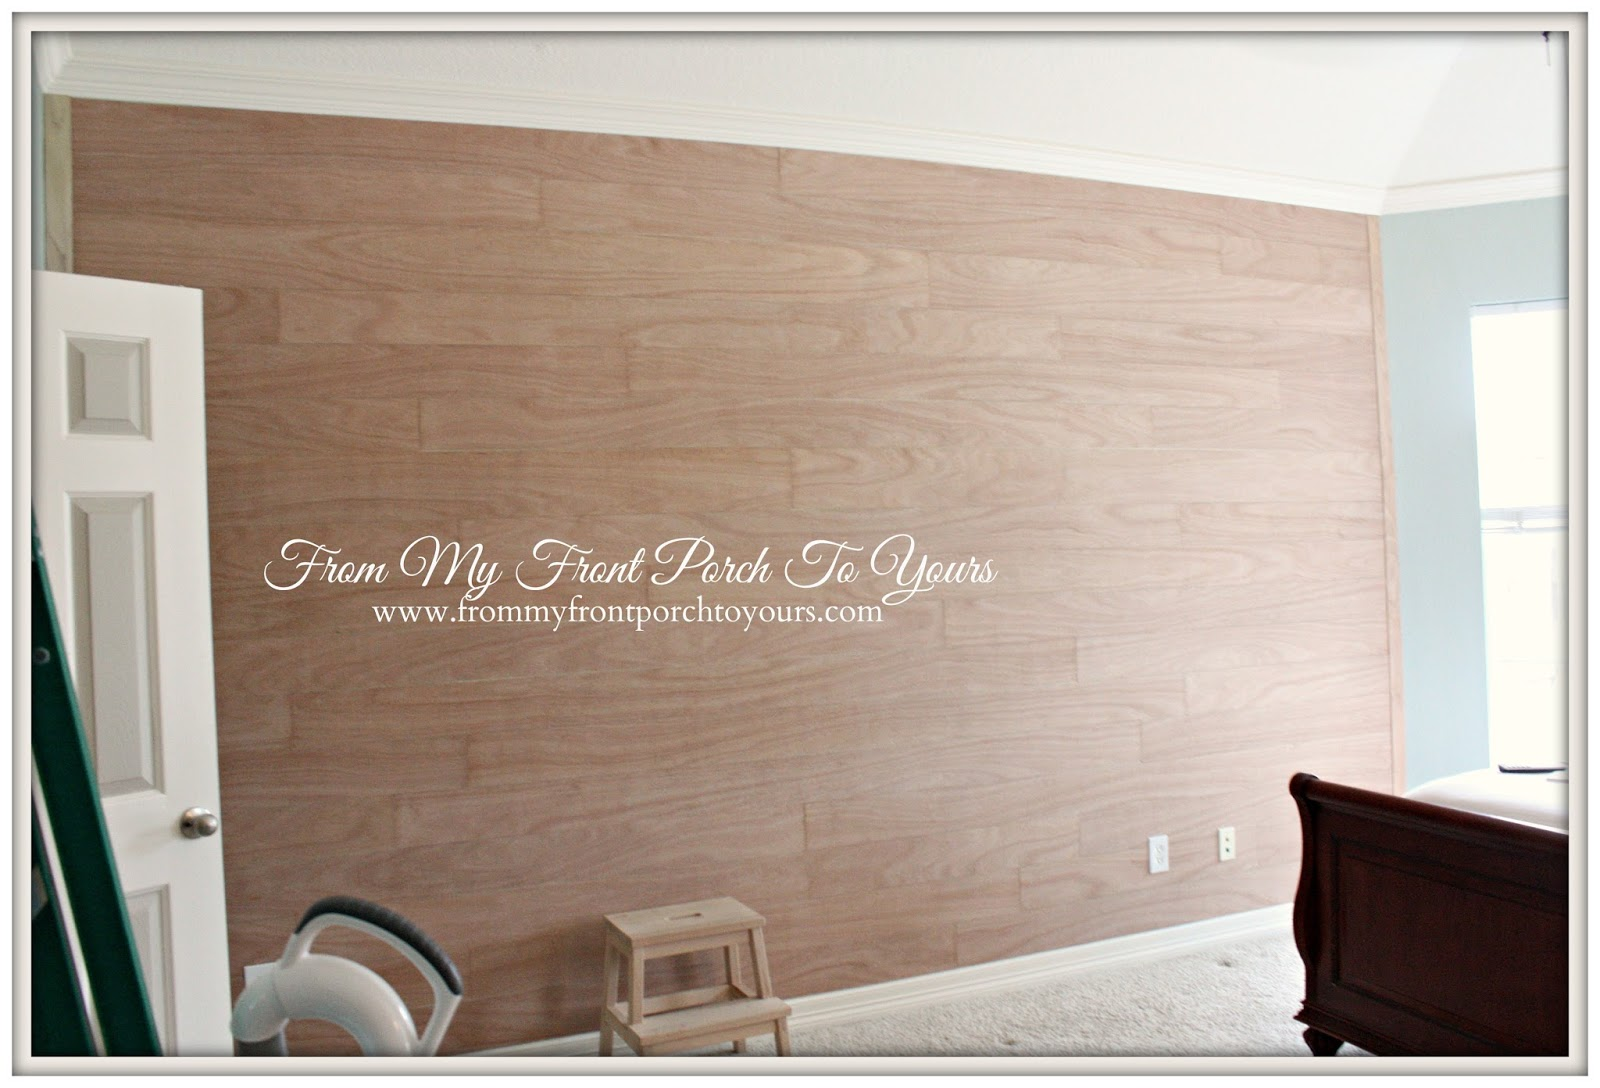 From My Front Porch To Yours- Planked Wall